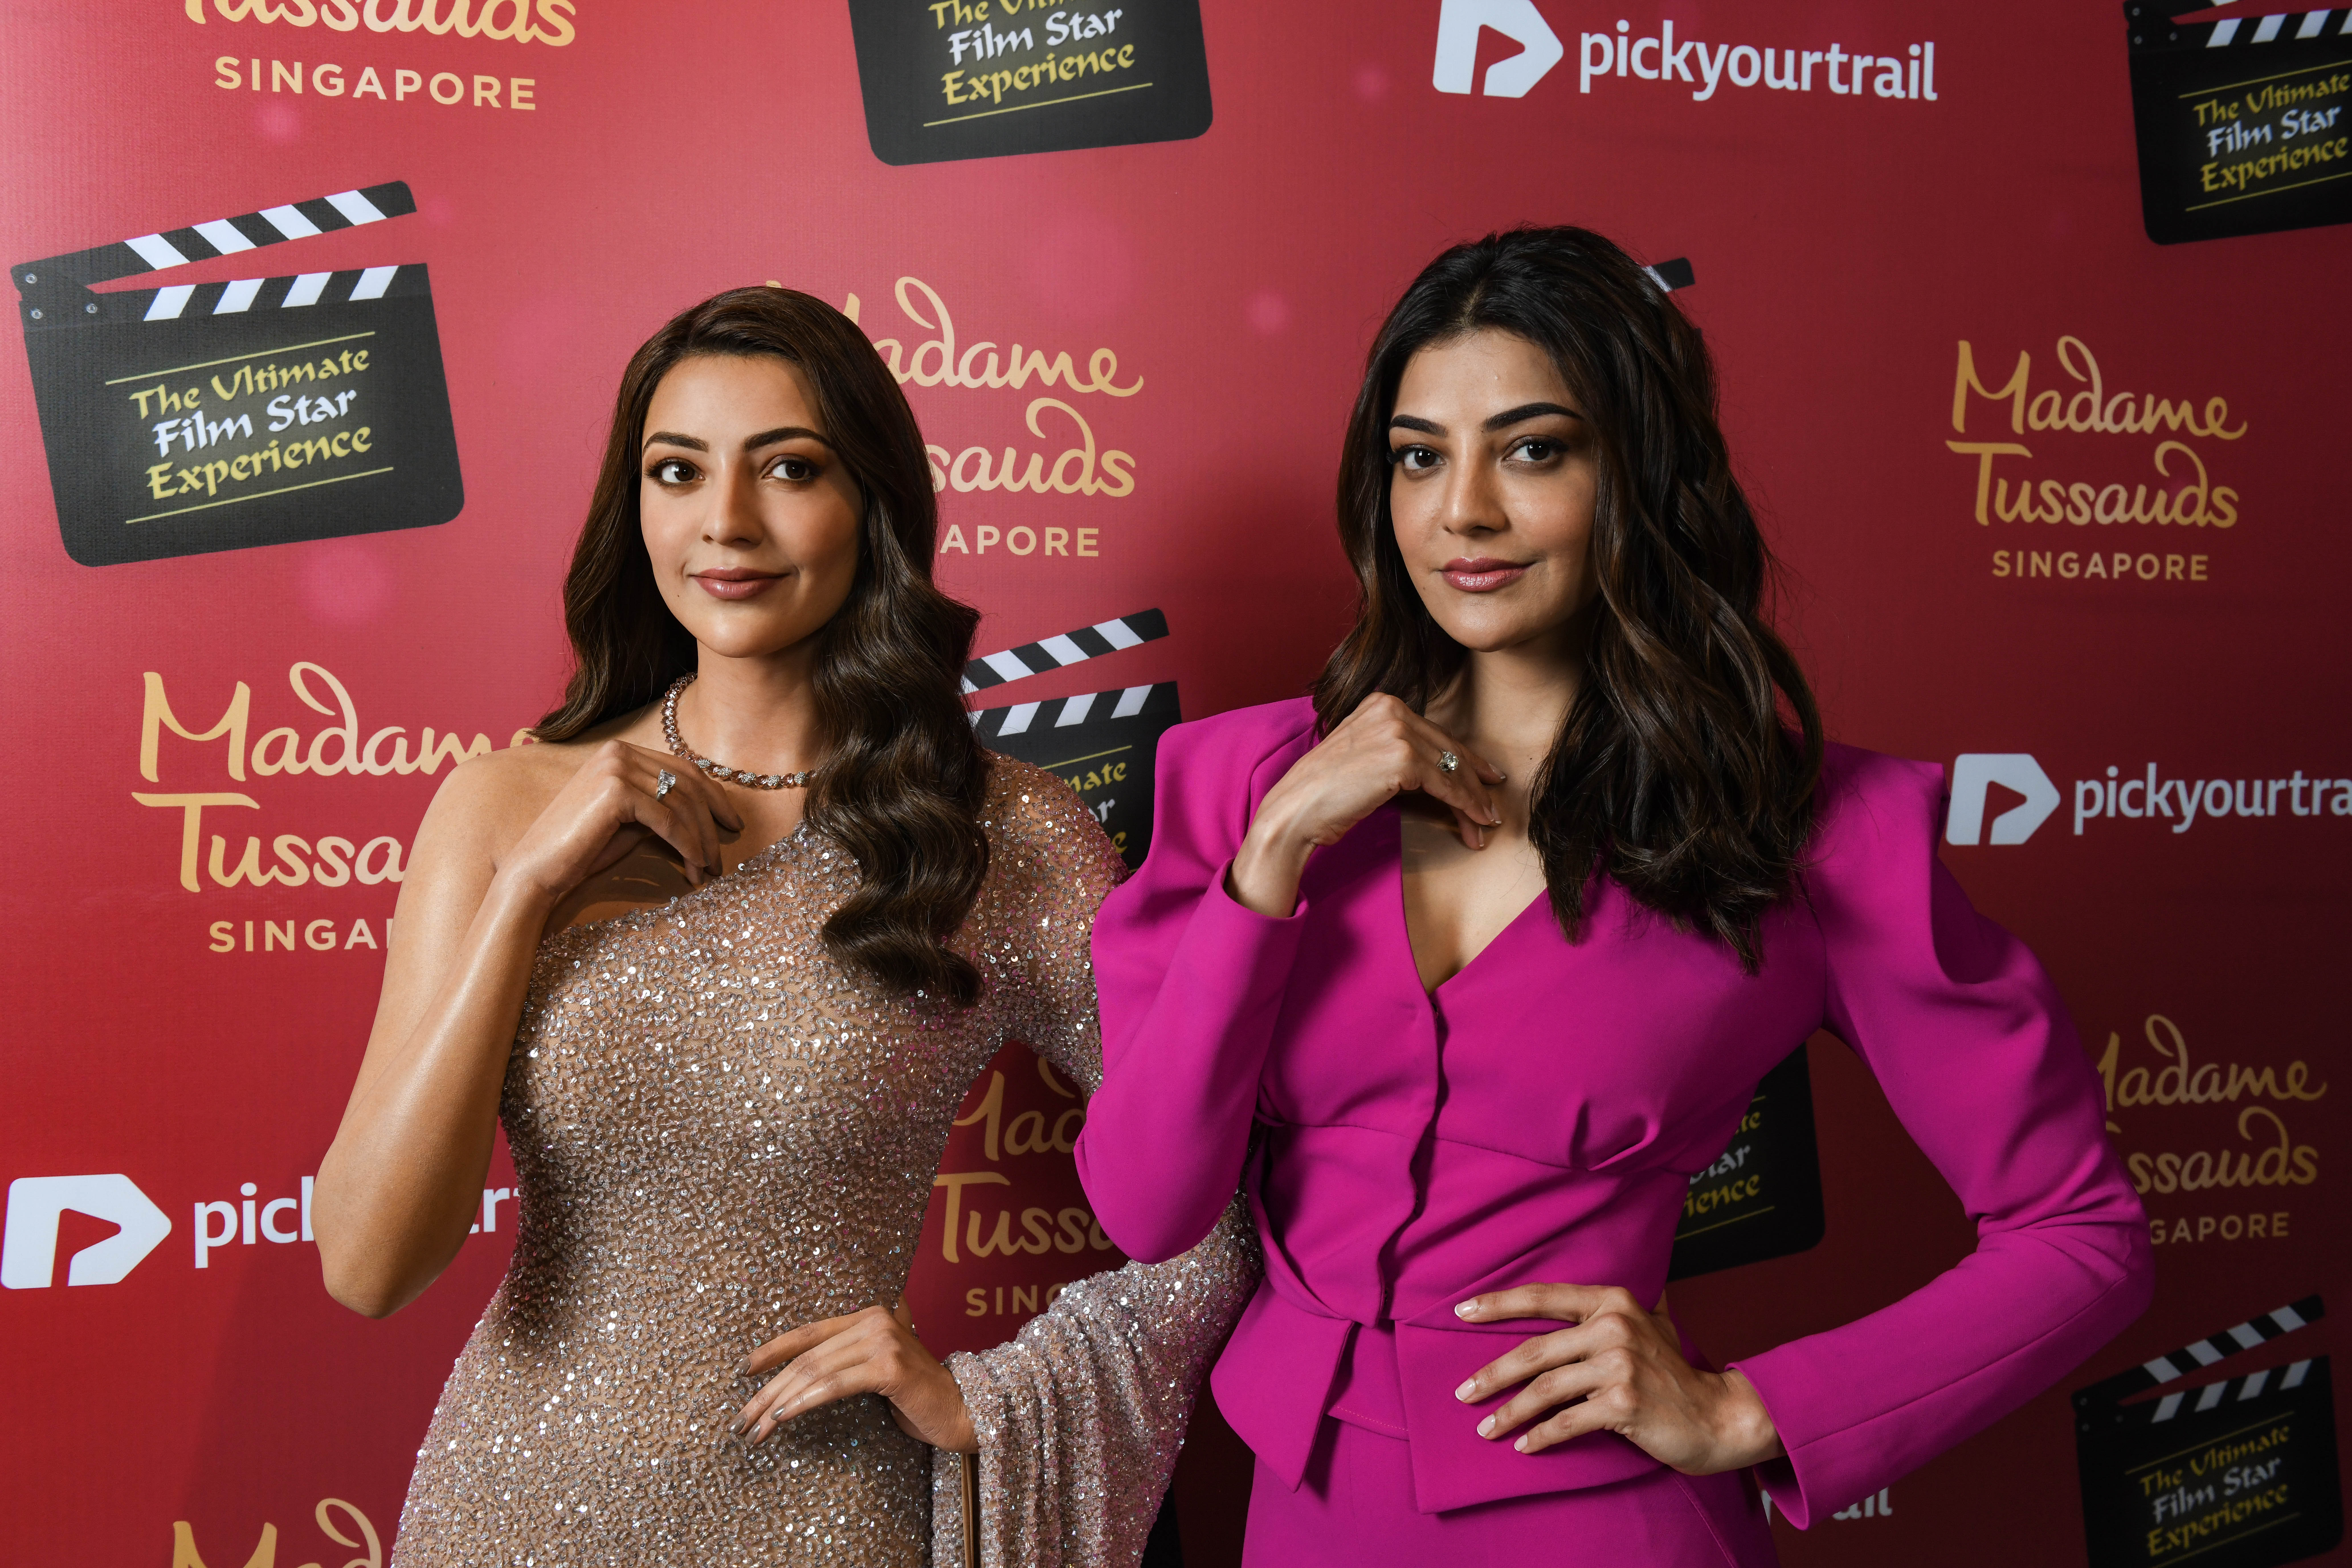 """It feels like I'm seeing myself through the eyes of an artist, the resemblance is uncanny and the attention to detail is spectacular,"""" said Kajal Aggarwal while posing side-by-side  with her newly unveiled wax figure at Madame Tussauds Singapore. Photo Courtesy: Madame Tussauds Singapore"""